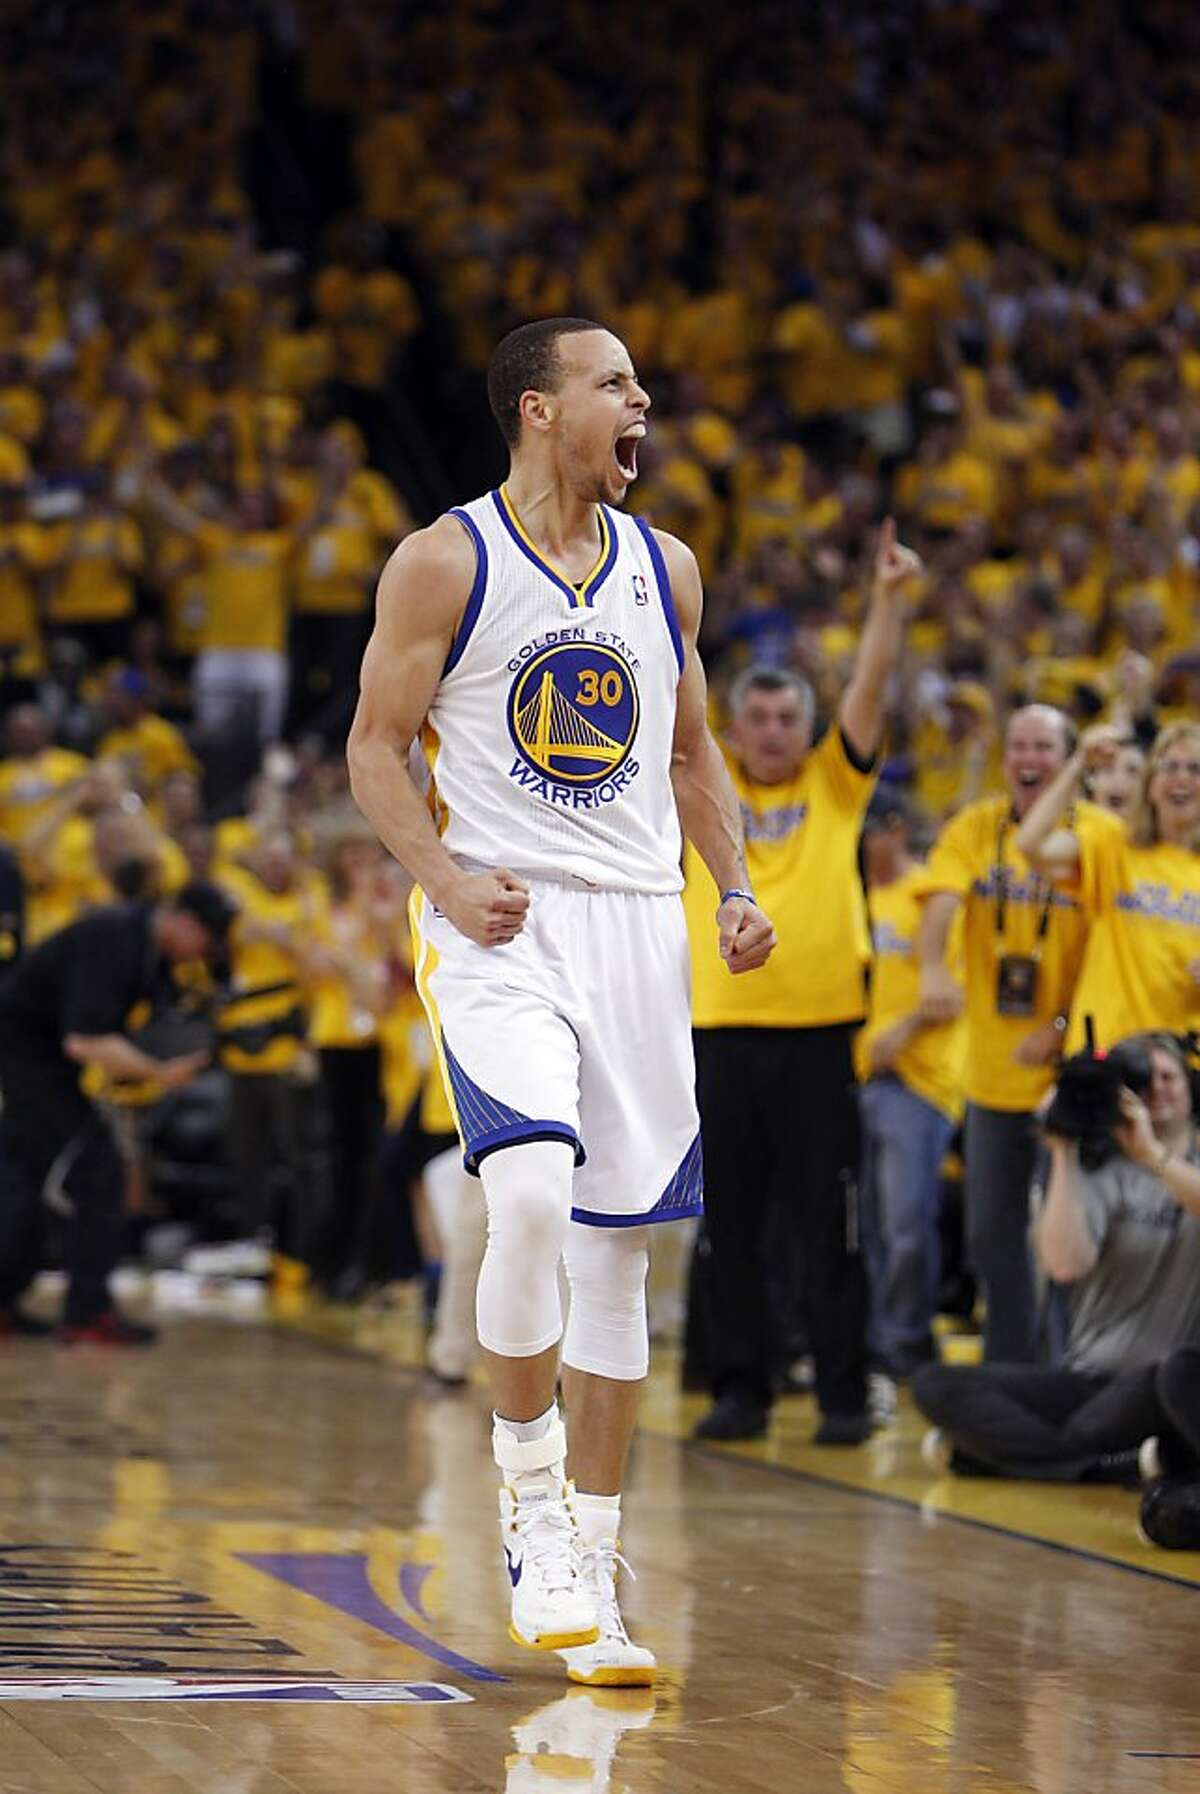 Stephen Curry (30) celebrates after hitting a three point shot in the second half. The Golden State Warriors played the Denver Nuggets in Game 4 of the first round of the NBA playoffs at Oracle Arena in Oakland, Calif., on Sunday, April 28, 2013.